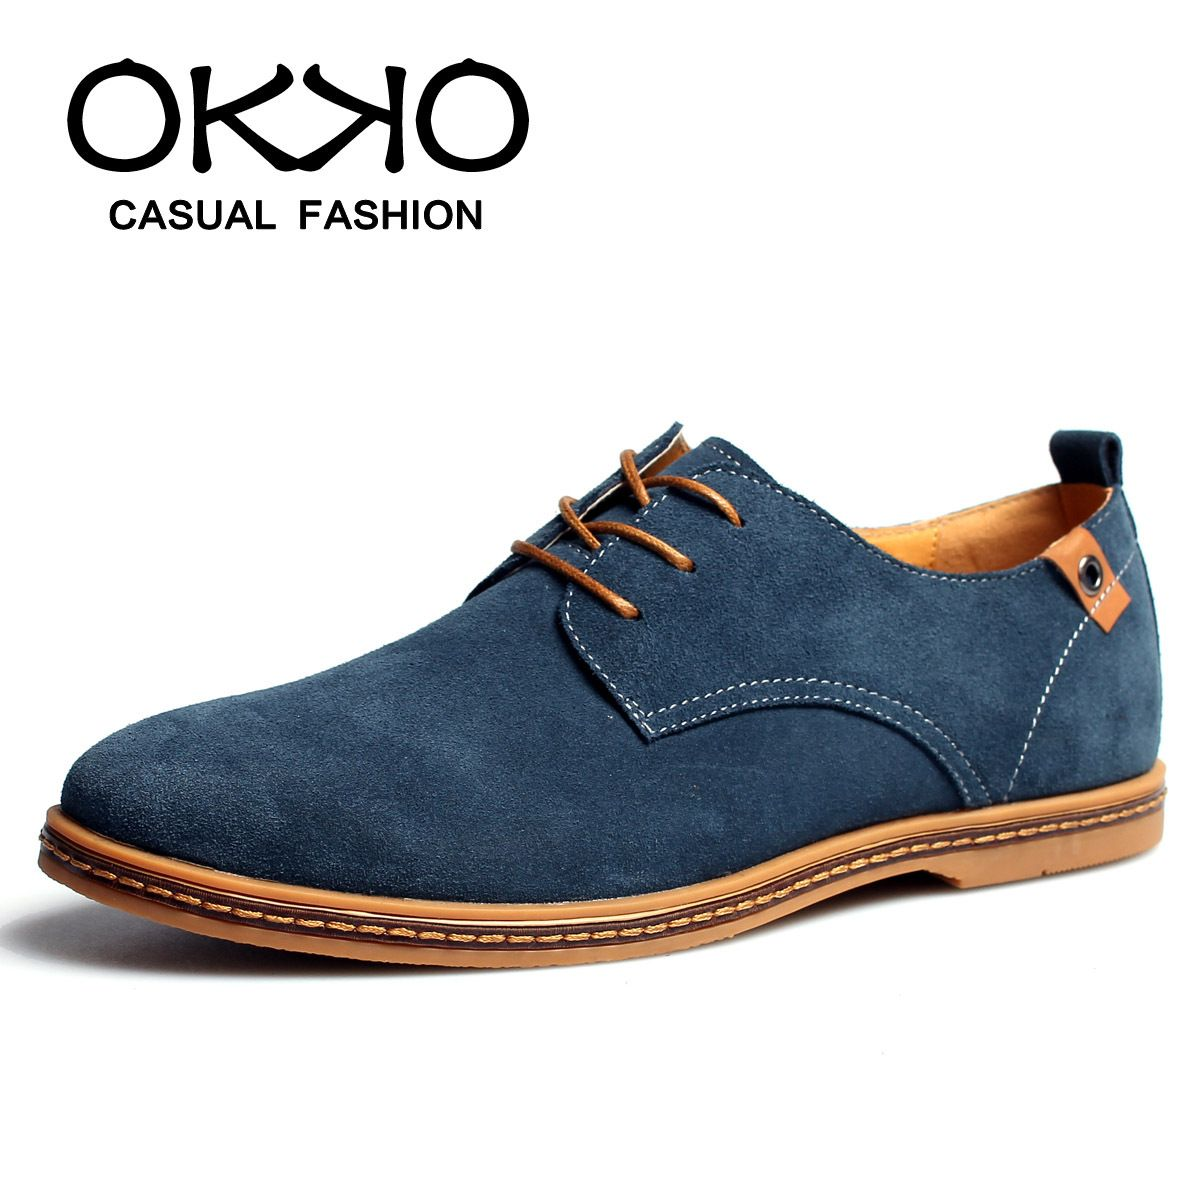 Online Shop 2014 New men's spring casual creepers suede shoes nubuck  leather oxford shoes loafers 6 colors Plus Size US size